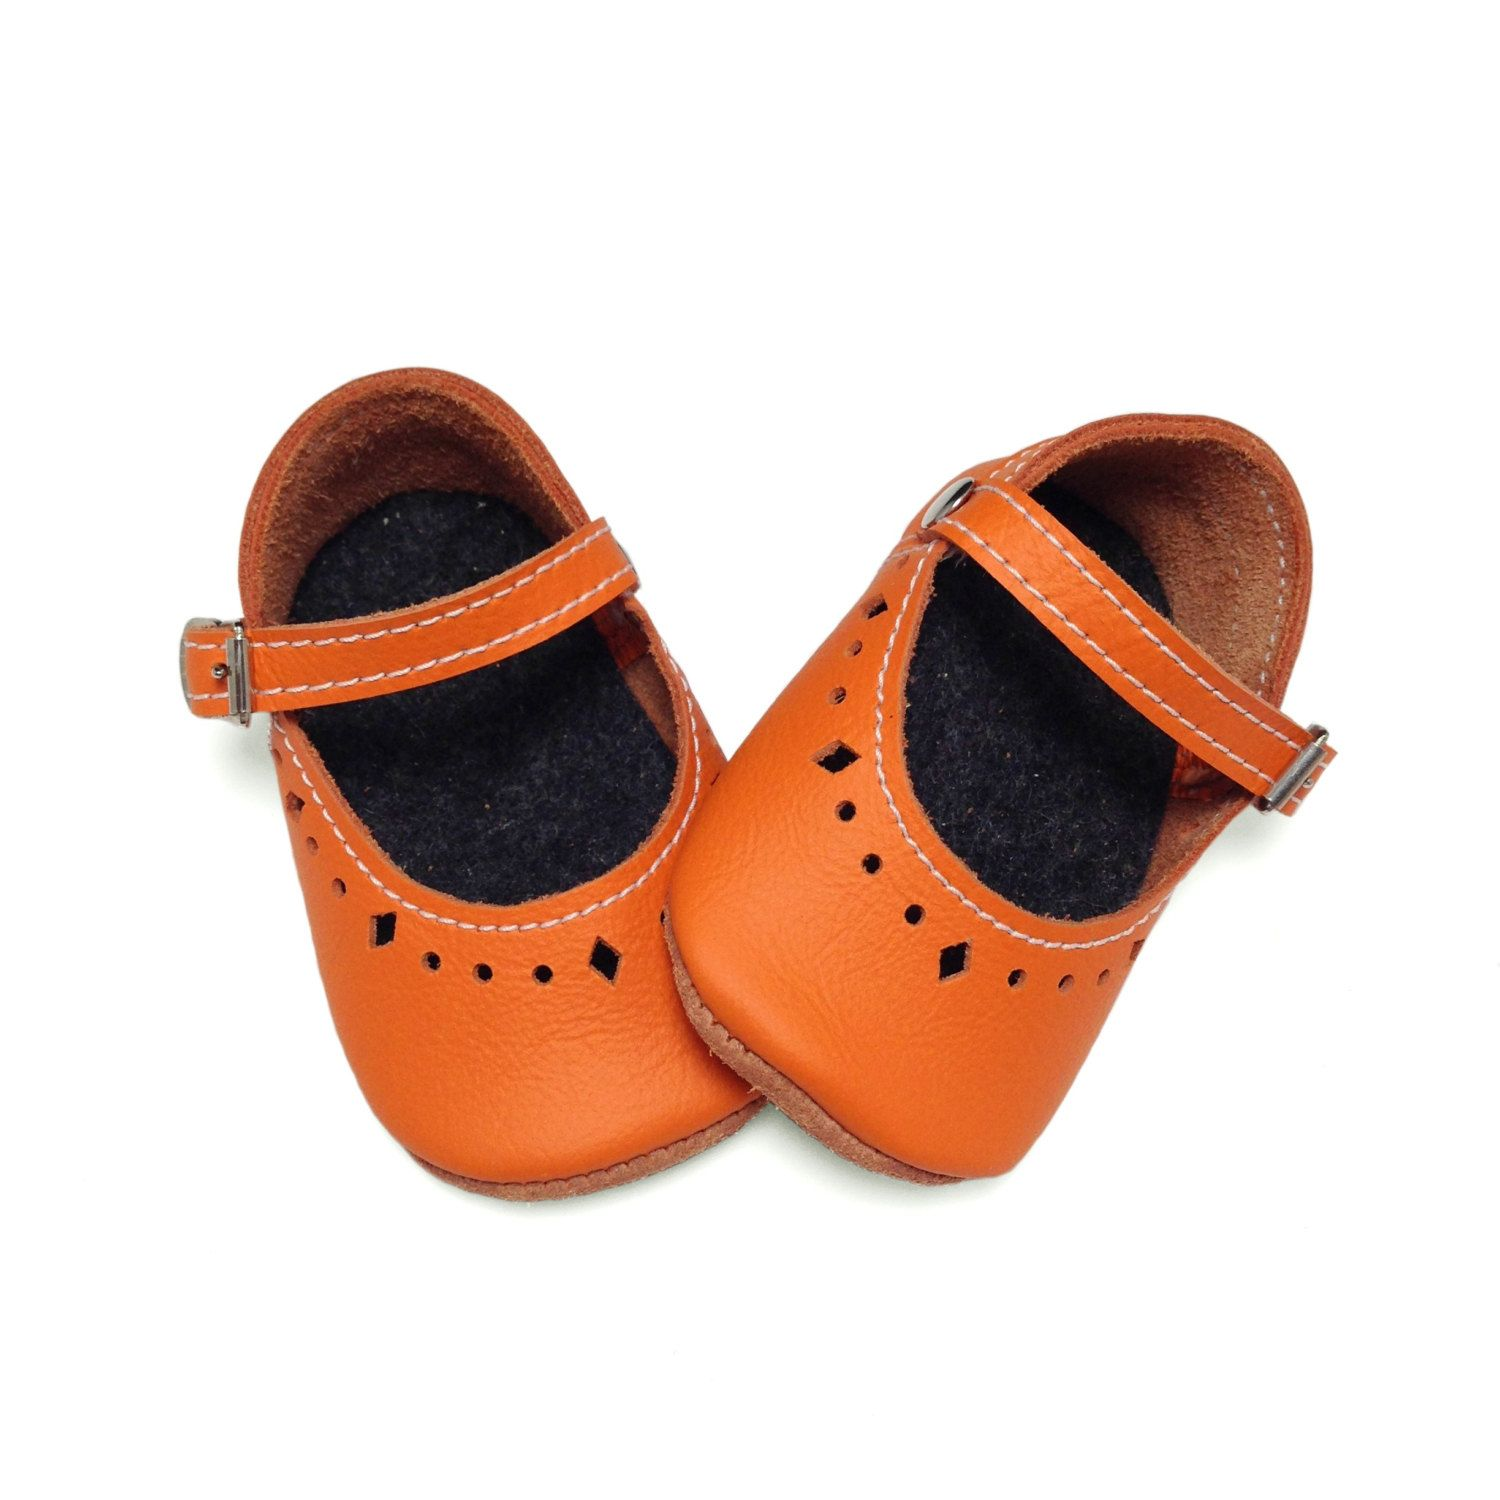 Orange leather soft soled baby shoes Infant shoes Mary Janes by